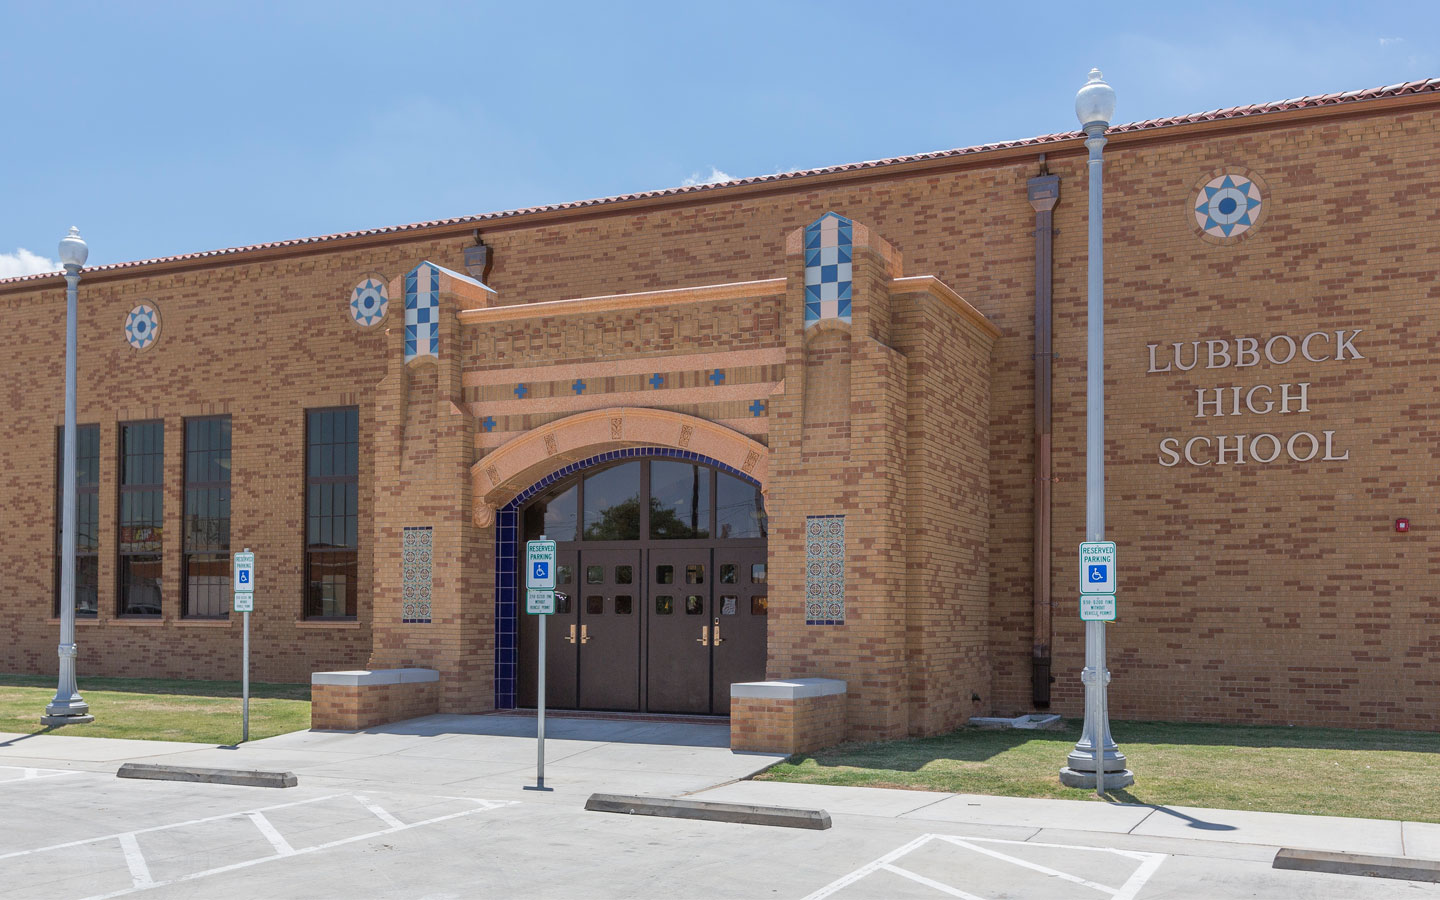 Lubbock High School